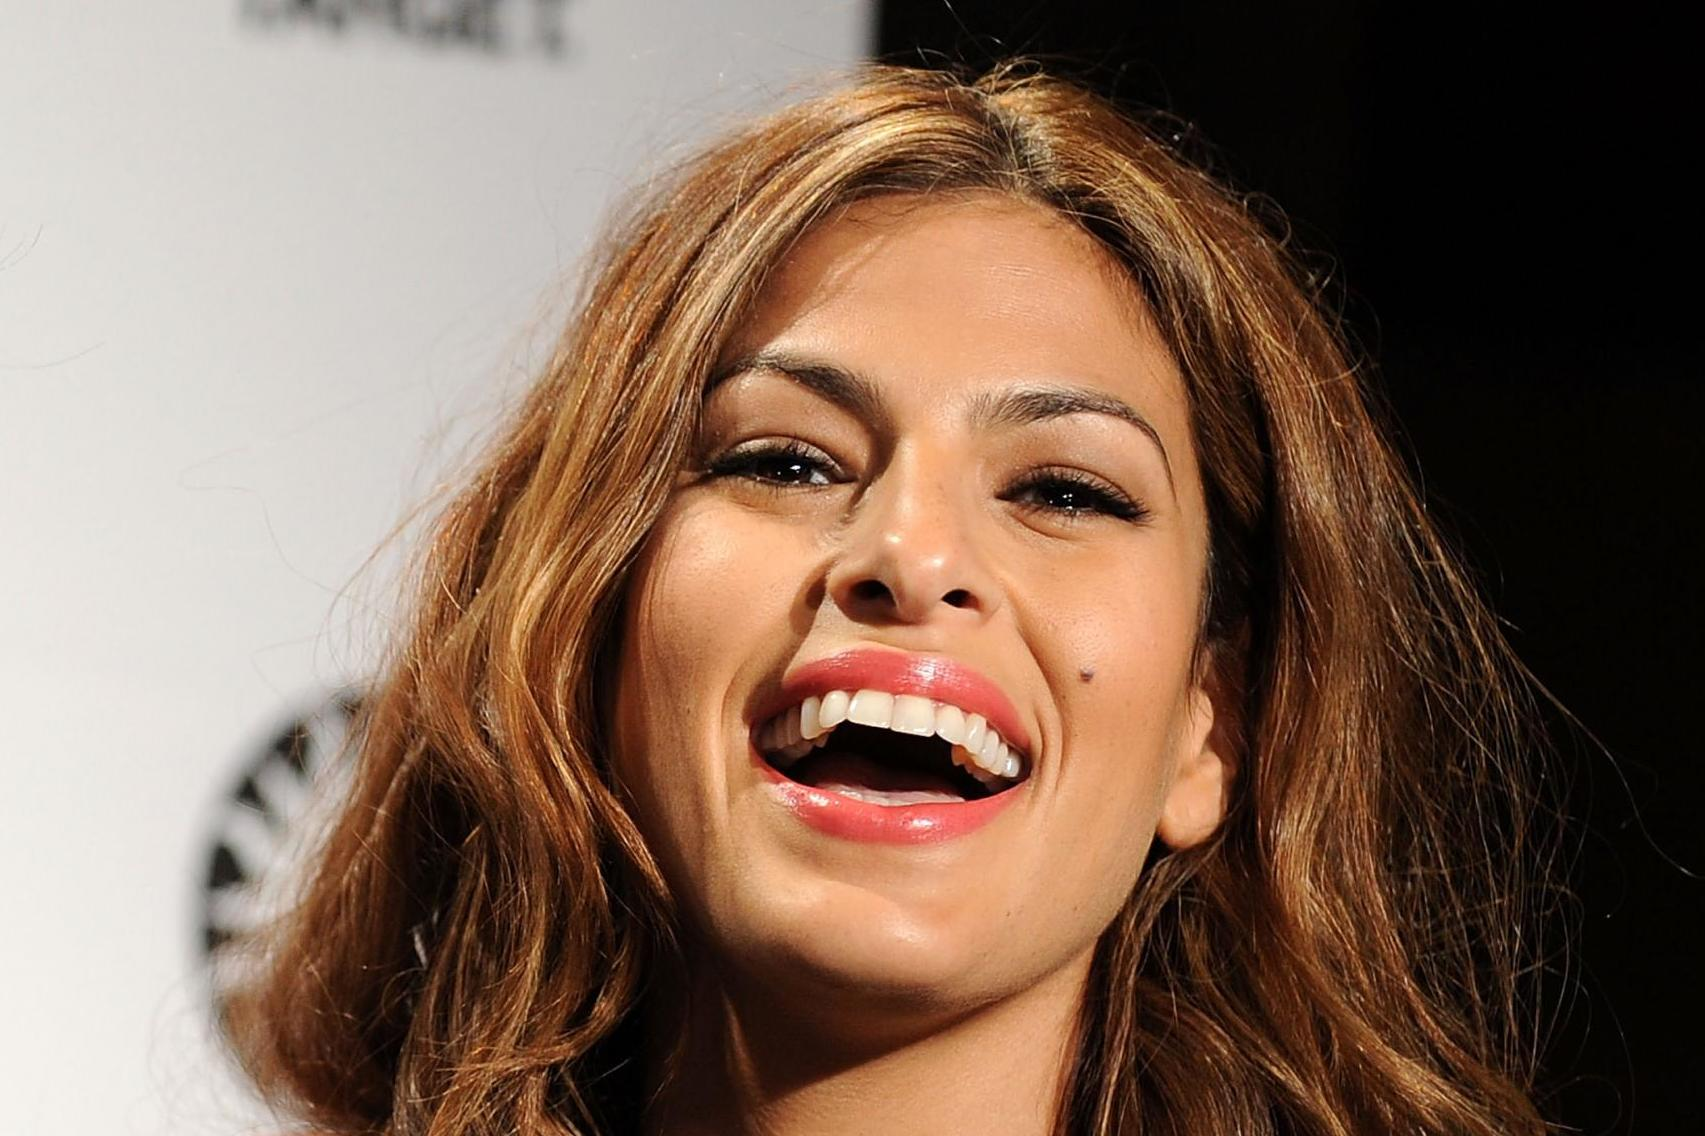 Eva Mendes schooled a troll who slammed her for 'getting old'